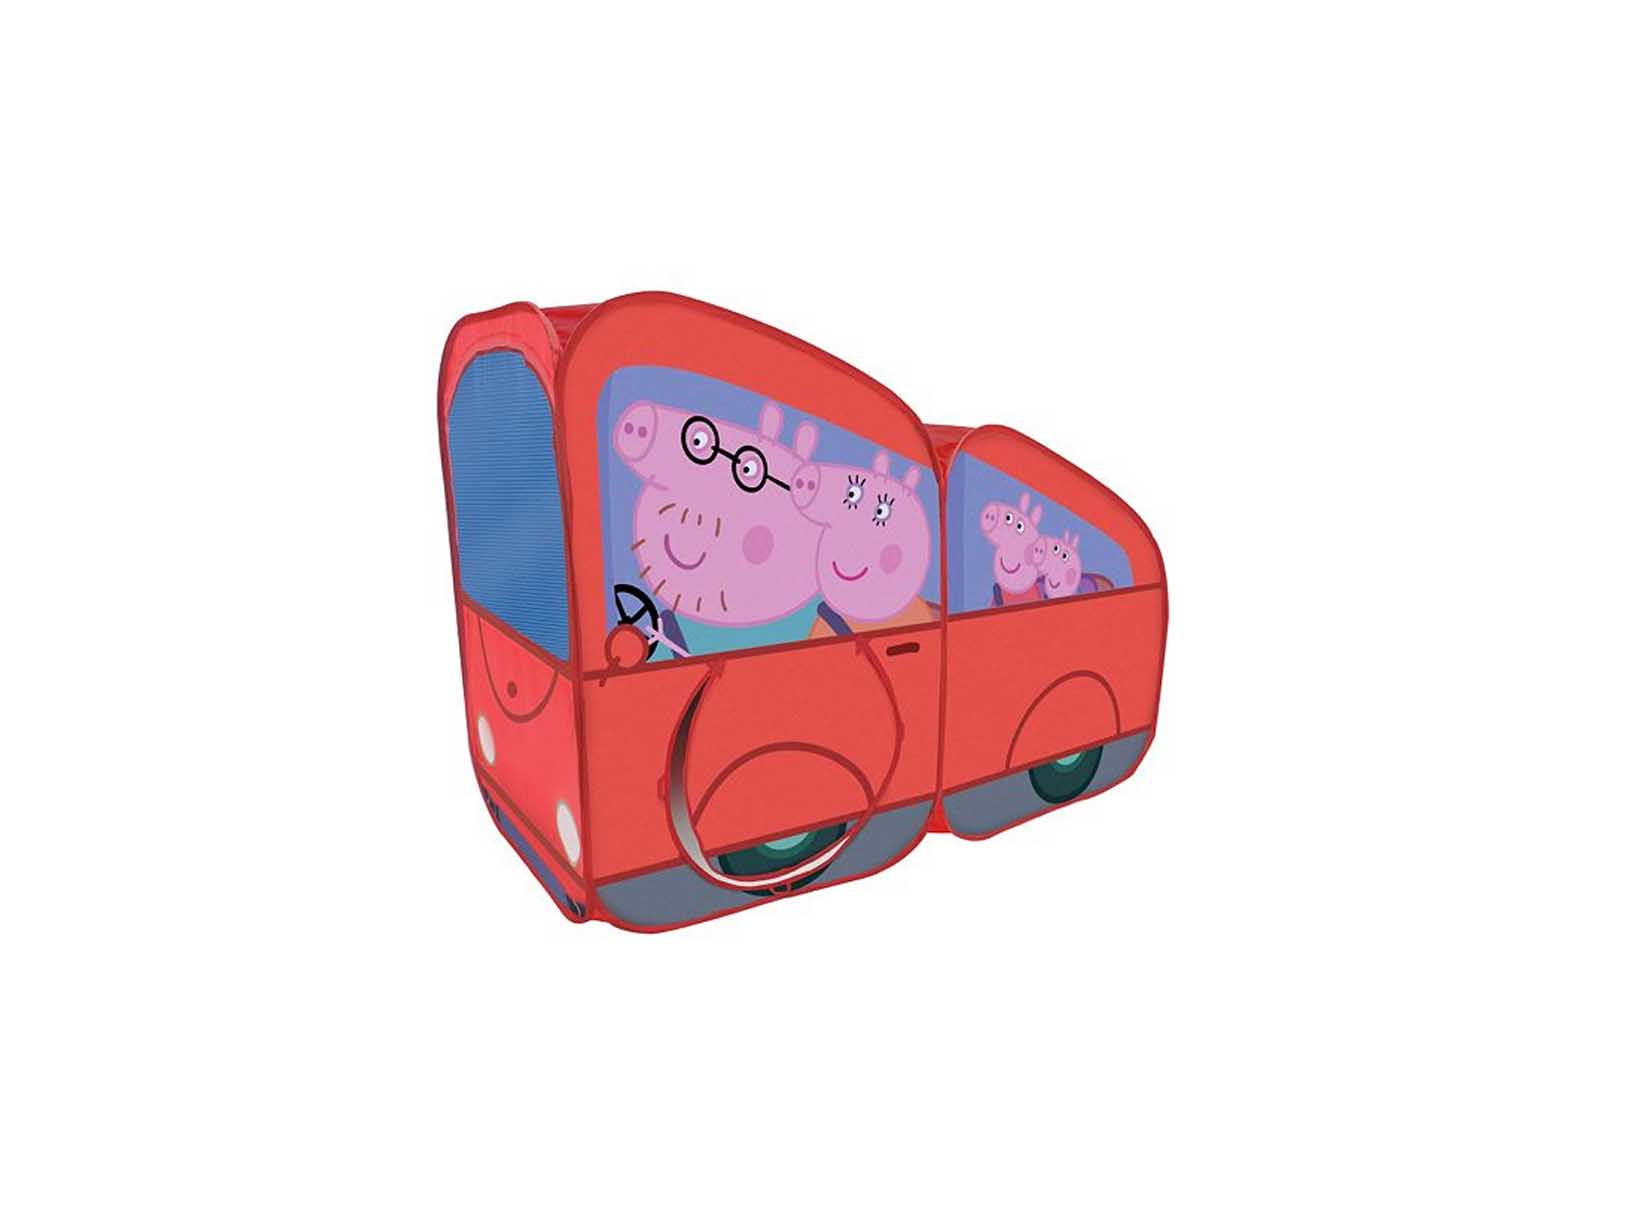 Peppa Pig Family Car Play Tent for $10.49 at Kohlu0027s  sc 1 st  The Best Deals Club & Peppa Pig Family Car Play Tent for $10.49 at Kohlu0027s u2013 The Best ...